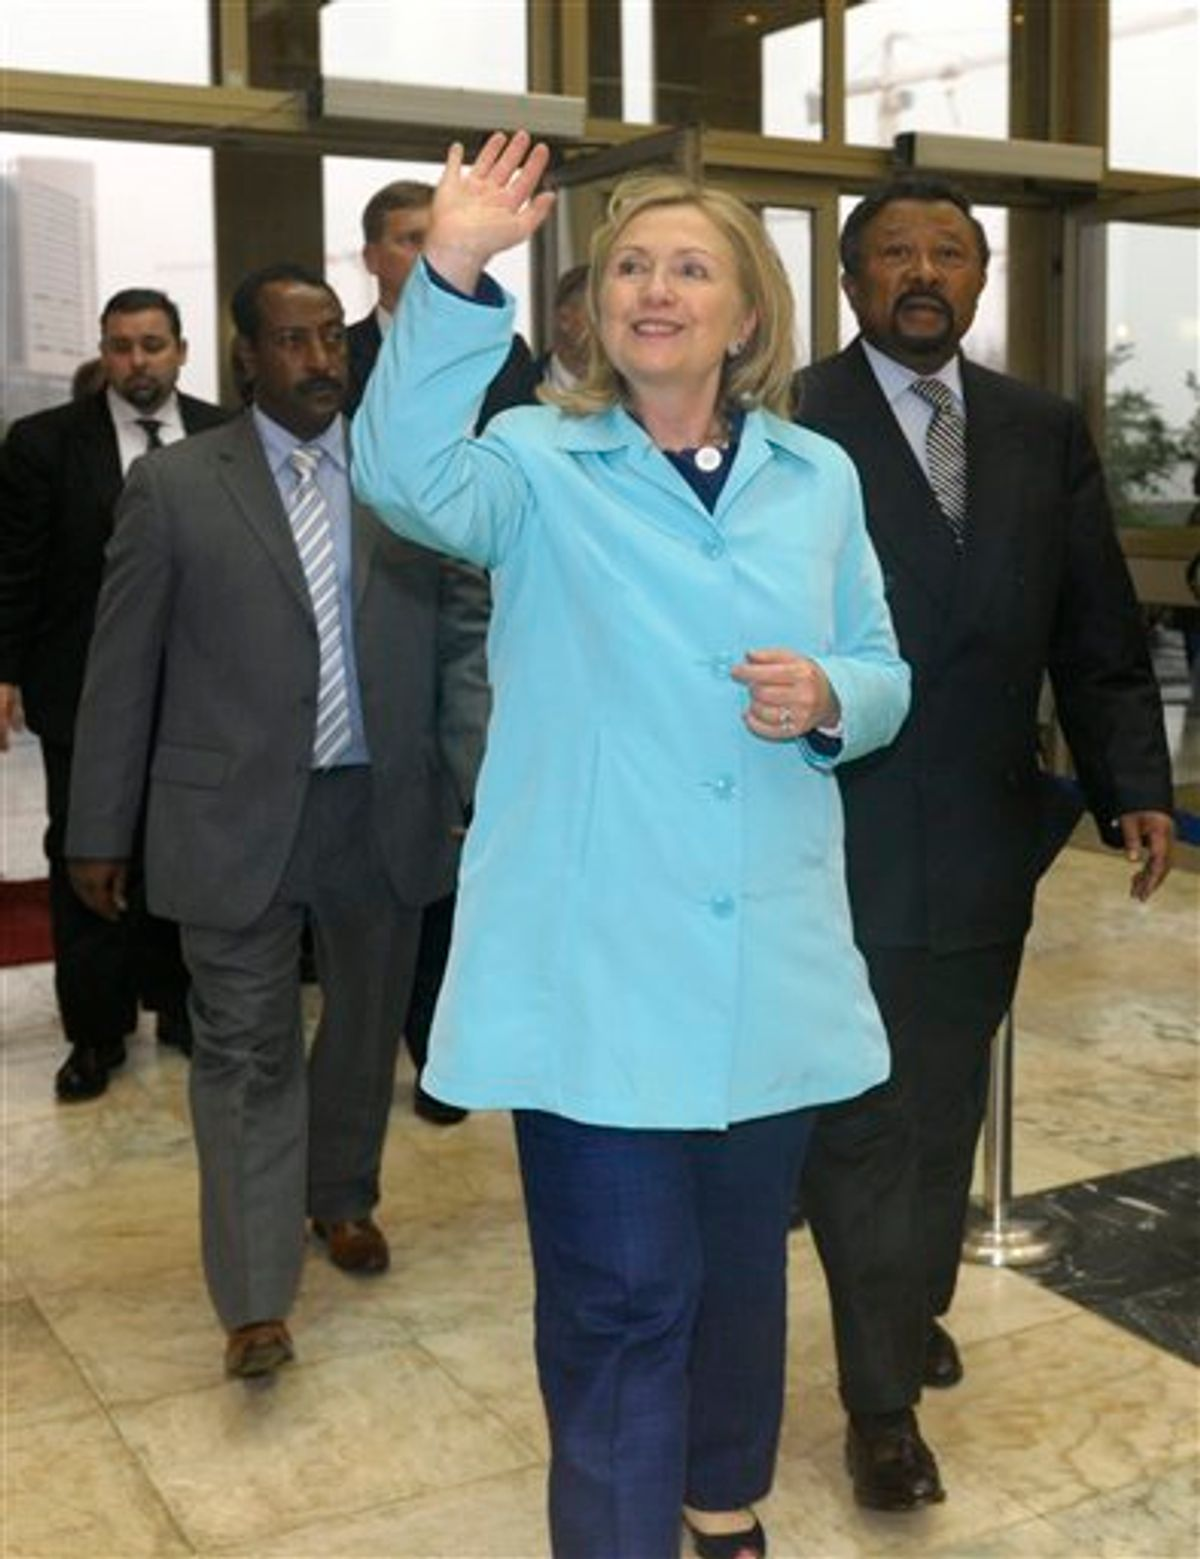 Secretary of State Hillary Rodham Clinton waves as she arrives and meets African Union Commission Chairperson Jean Ping, right, at the African Union headquarters in Addis Ababa, Ethiopia, Monday, June 13, 2011.  (AP Photo/Susan Walsh, POOL) (AP)